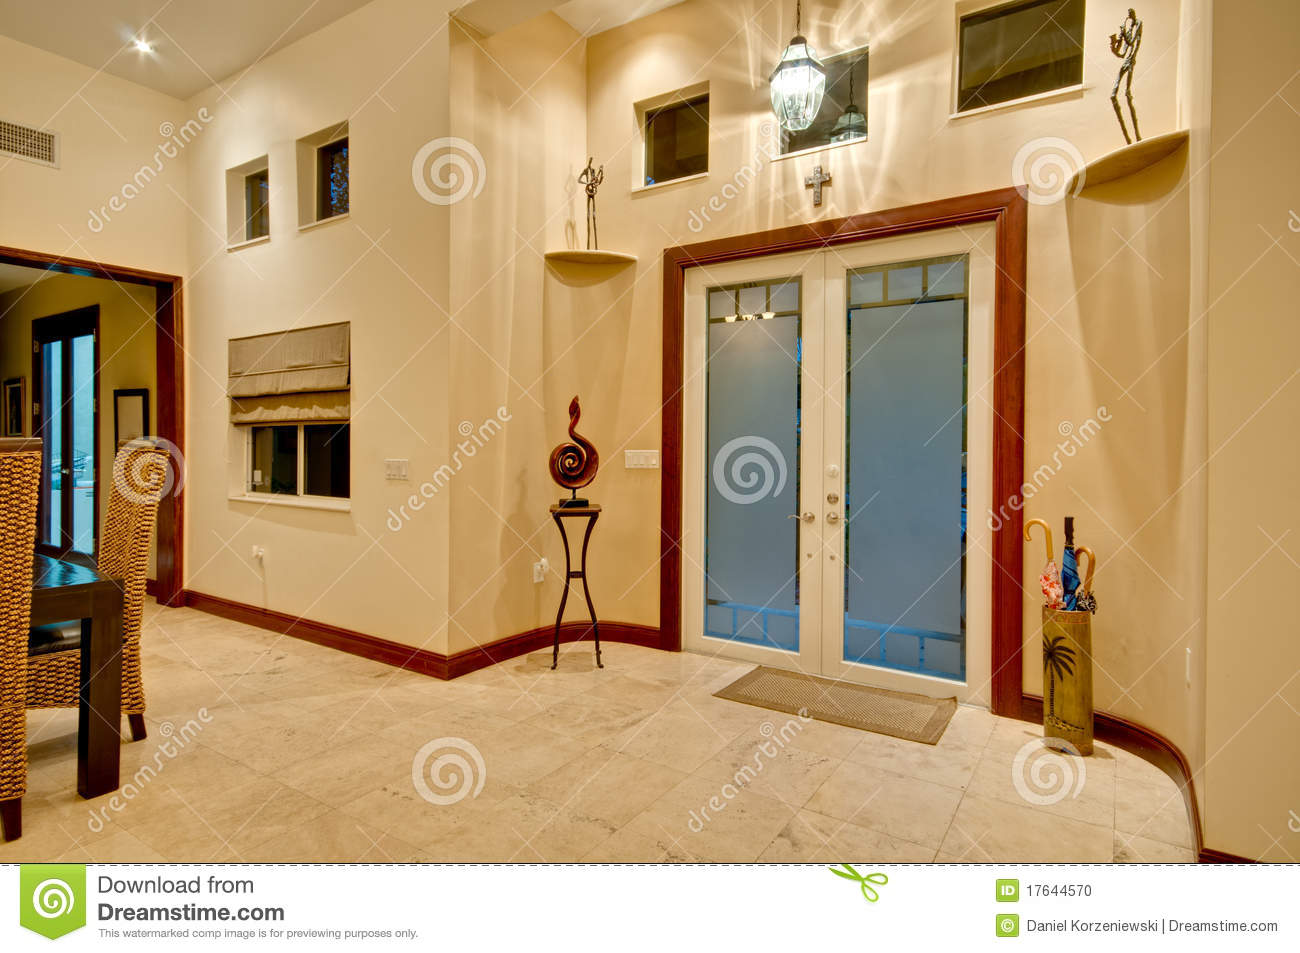 Entr e la maison moderne photo stock image 17644570 for Entree d une maison